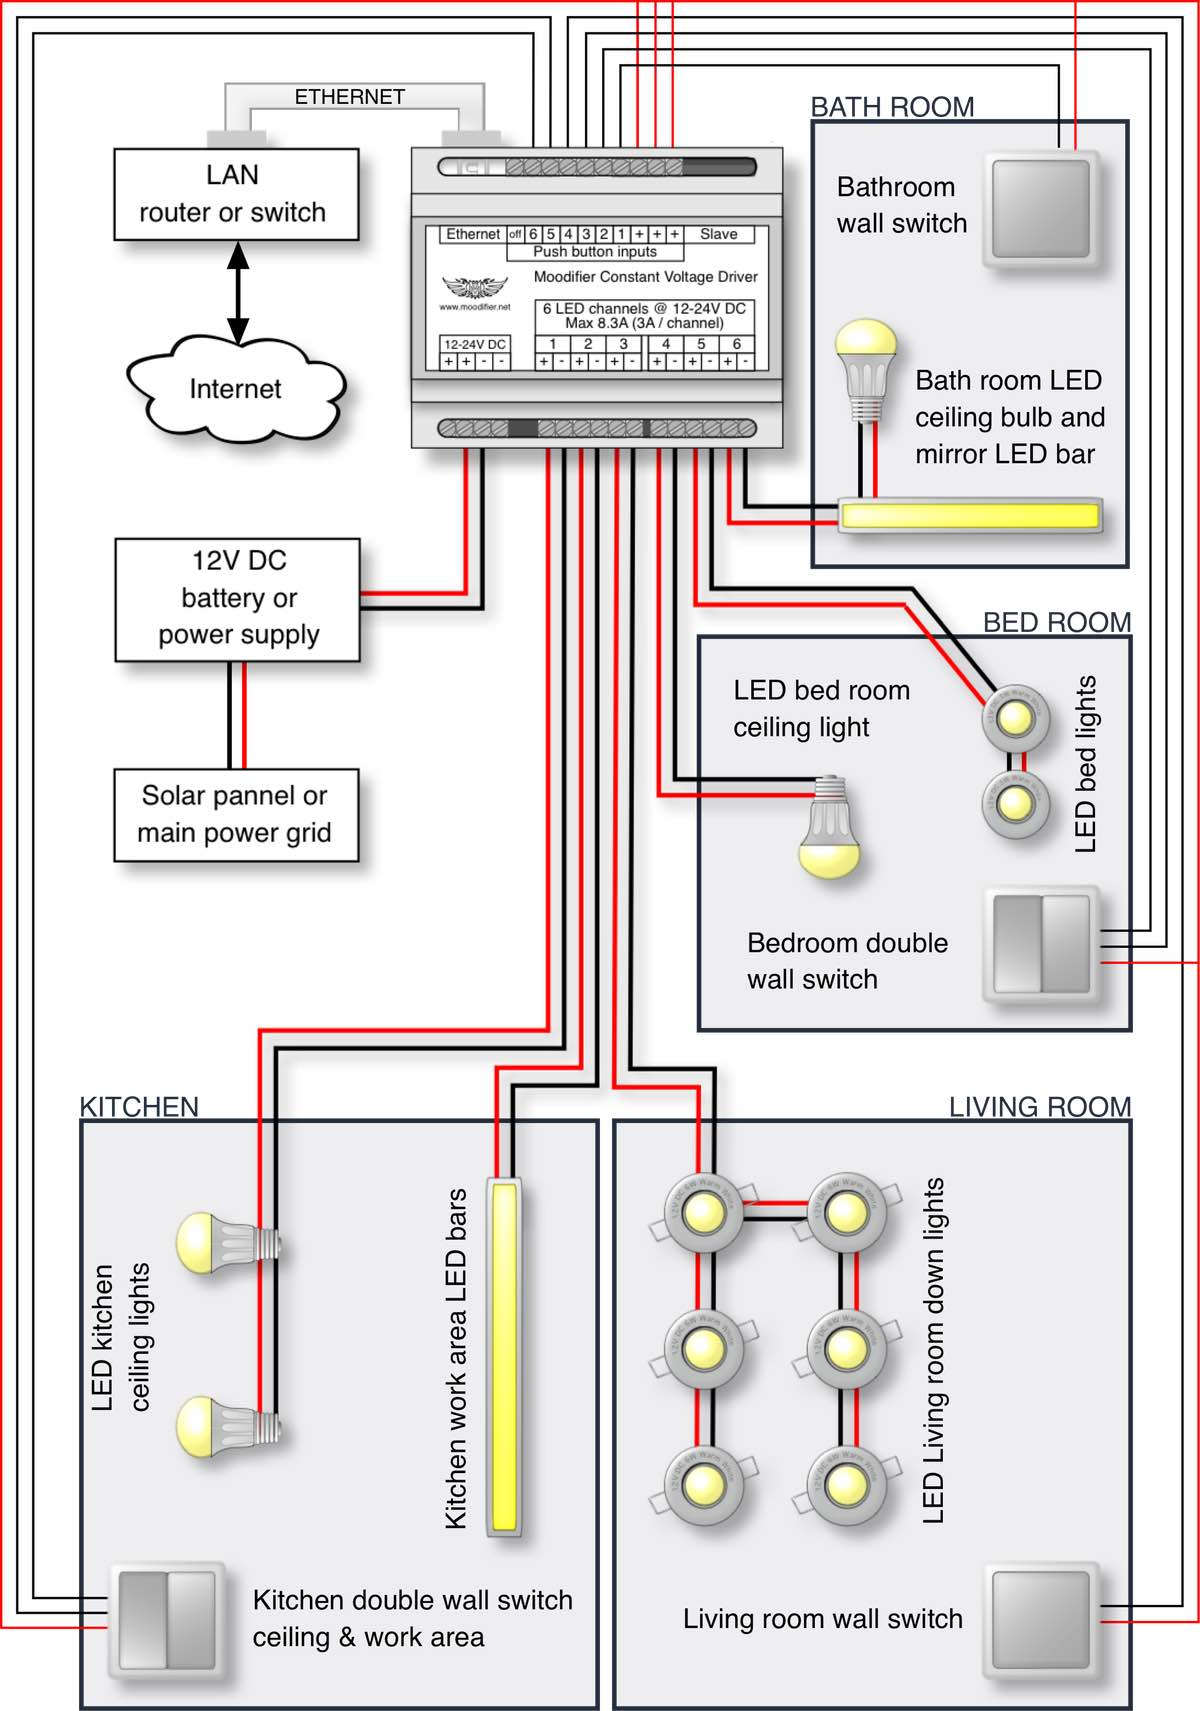 As you can se in the wiring diagram, there are 4 rooms, a kitchen, a living  room, a bed room and a bath room. Cables go from the Moodifier Constant  Voltage ...